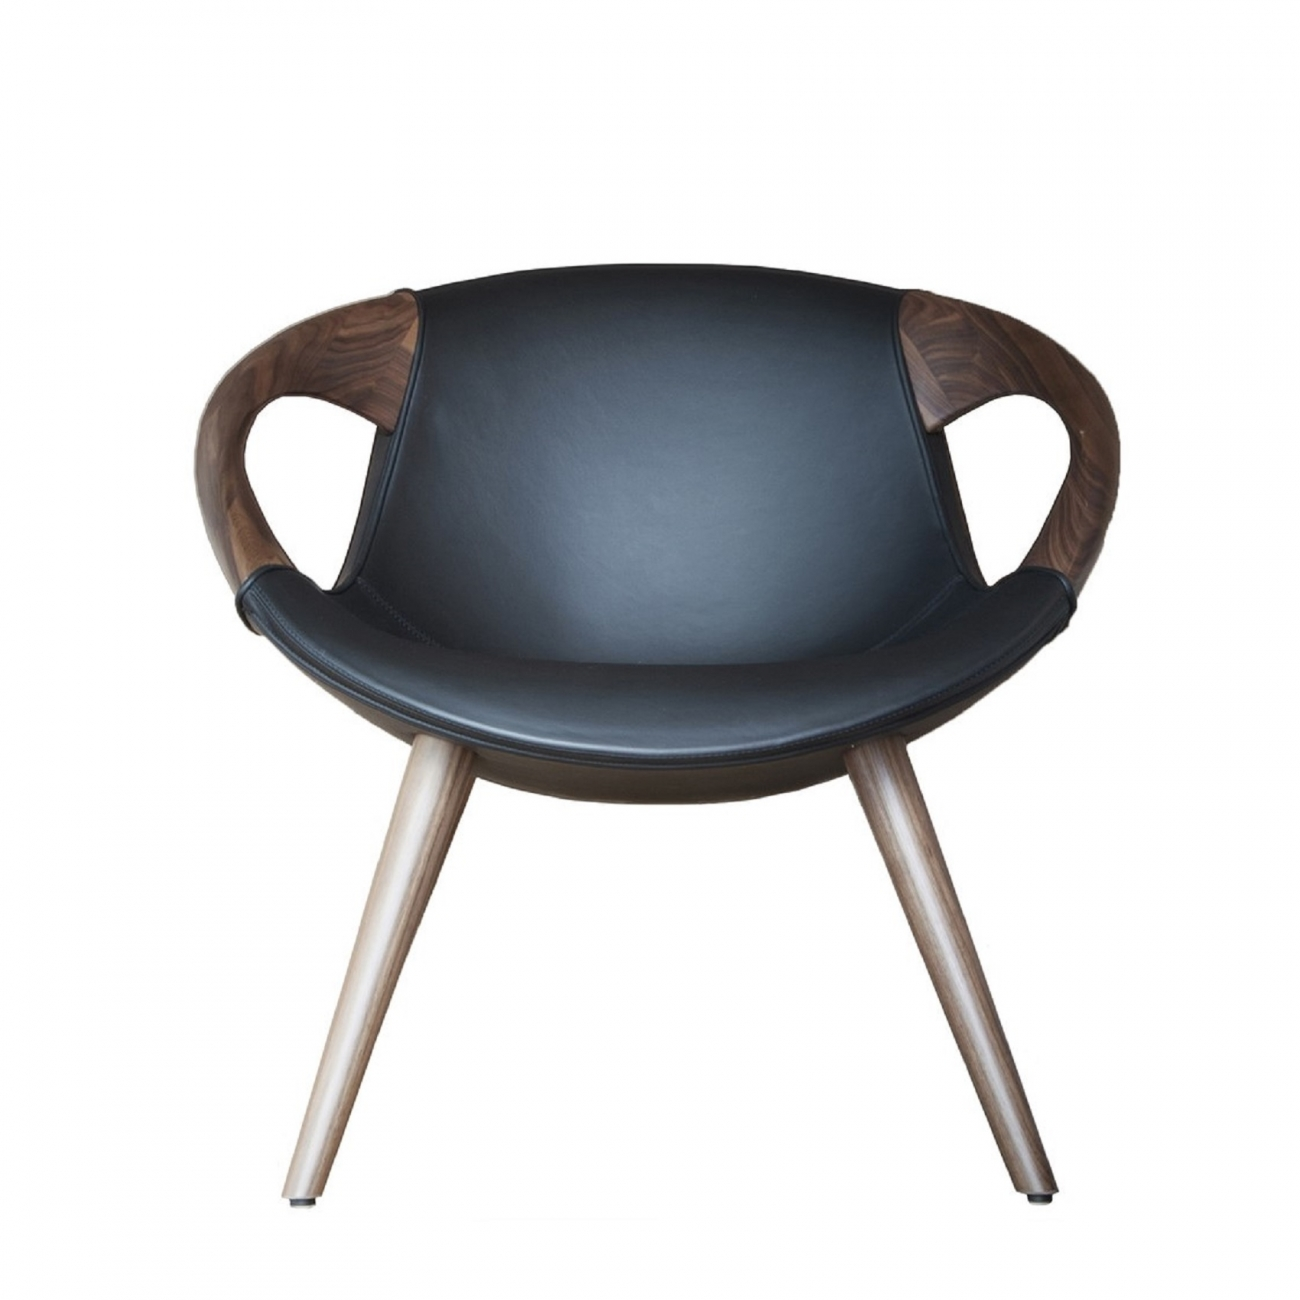 Tonon Up Wooden Arms Chair Tattahome, Lounge Chairs With Wooden Arms